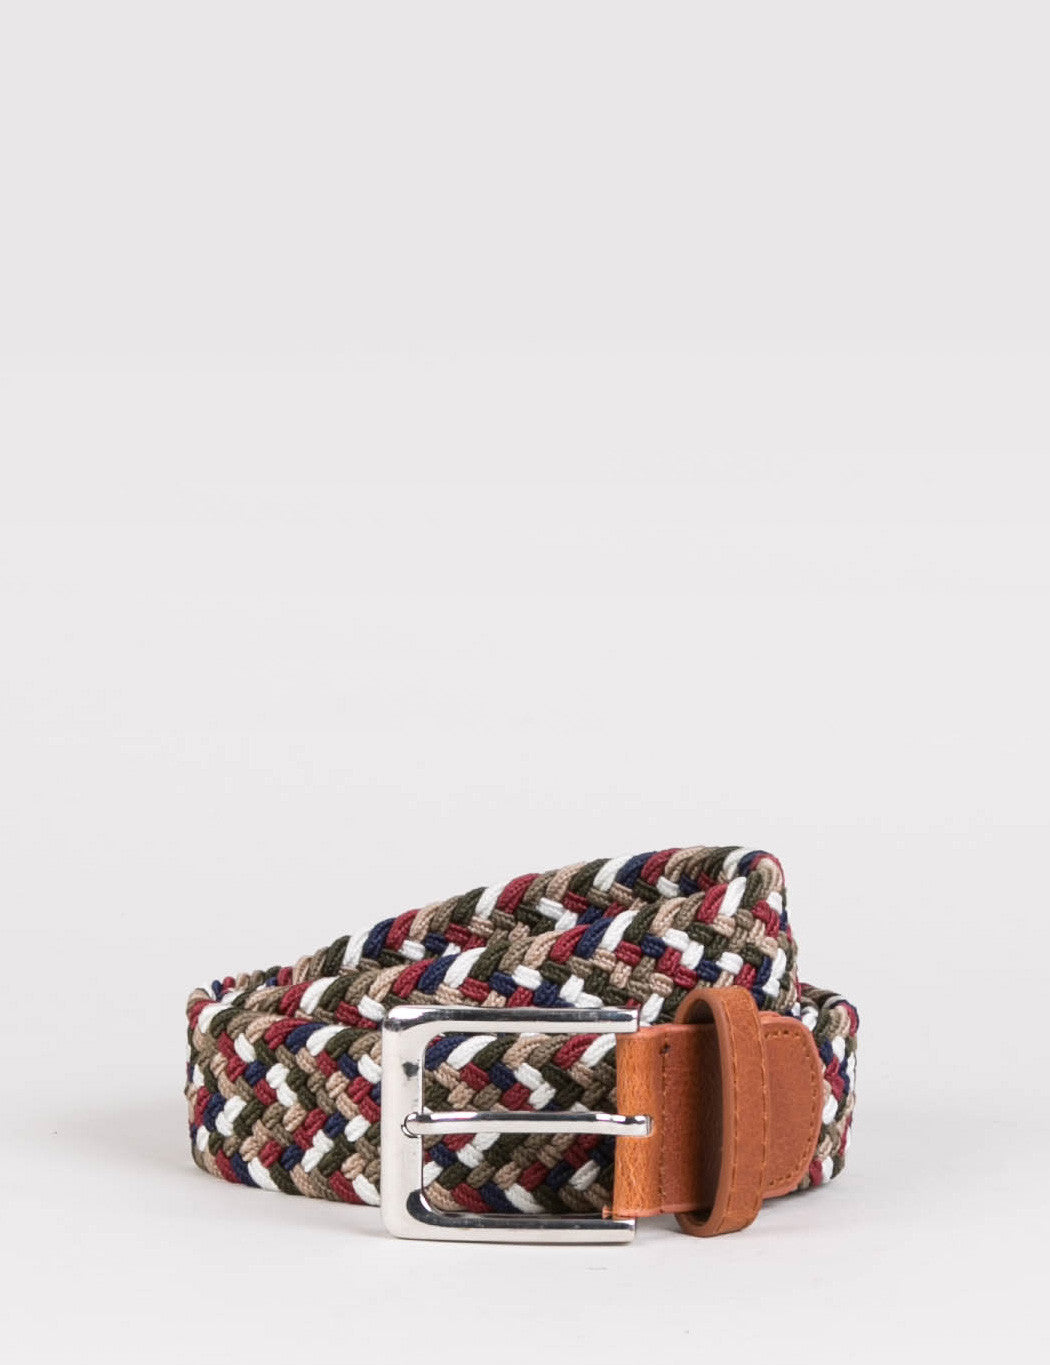 Hone Woven Plait Belt - Multi Olive/Blue